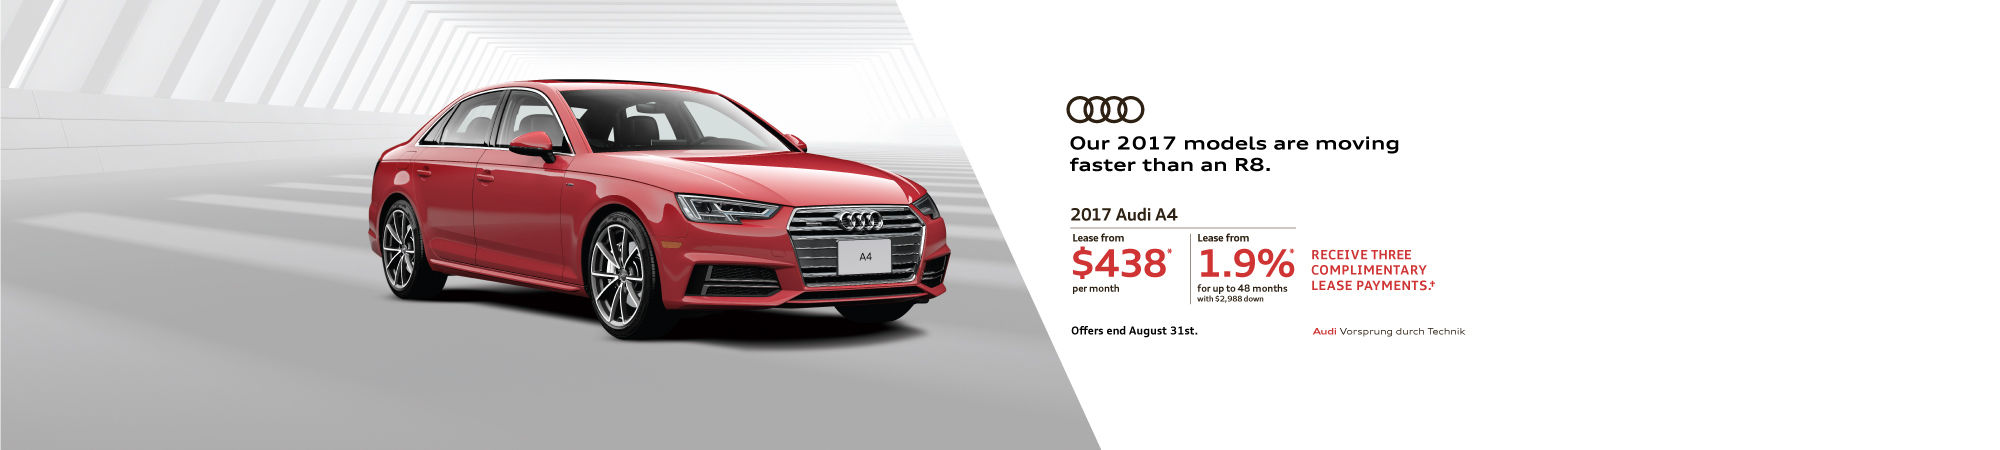 August 2017 Audi A4 Offer